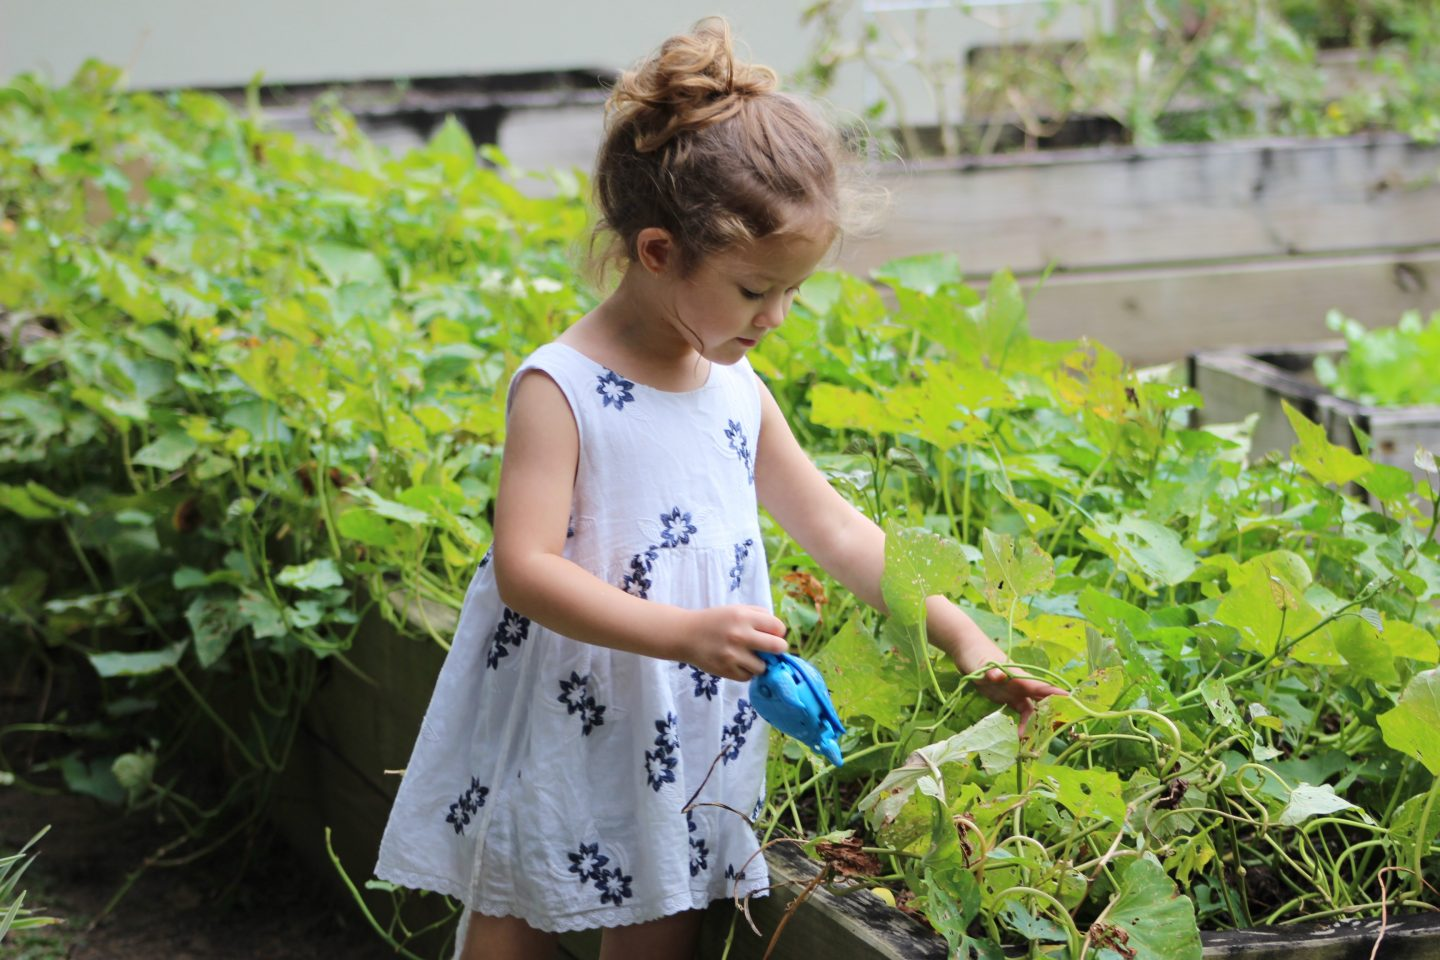 3 Fun Garden Activities That Kids Will Love